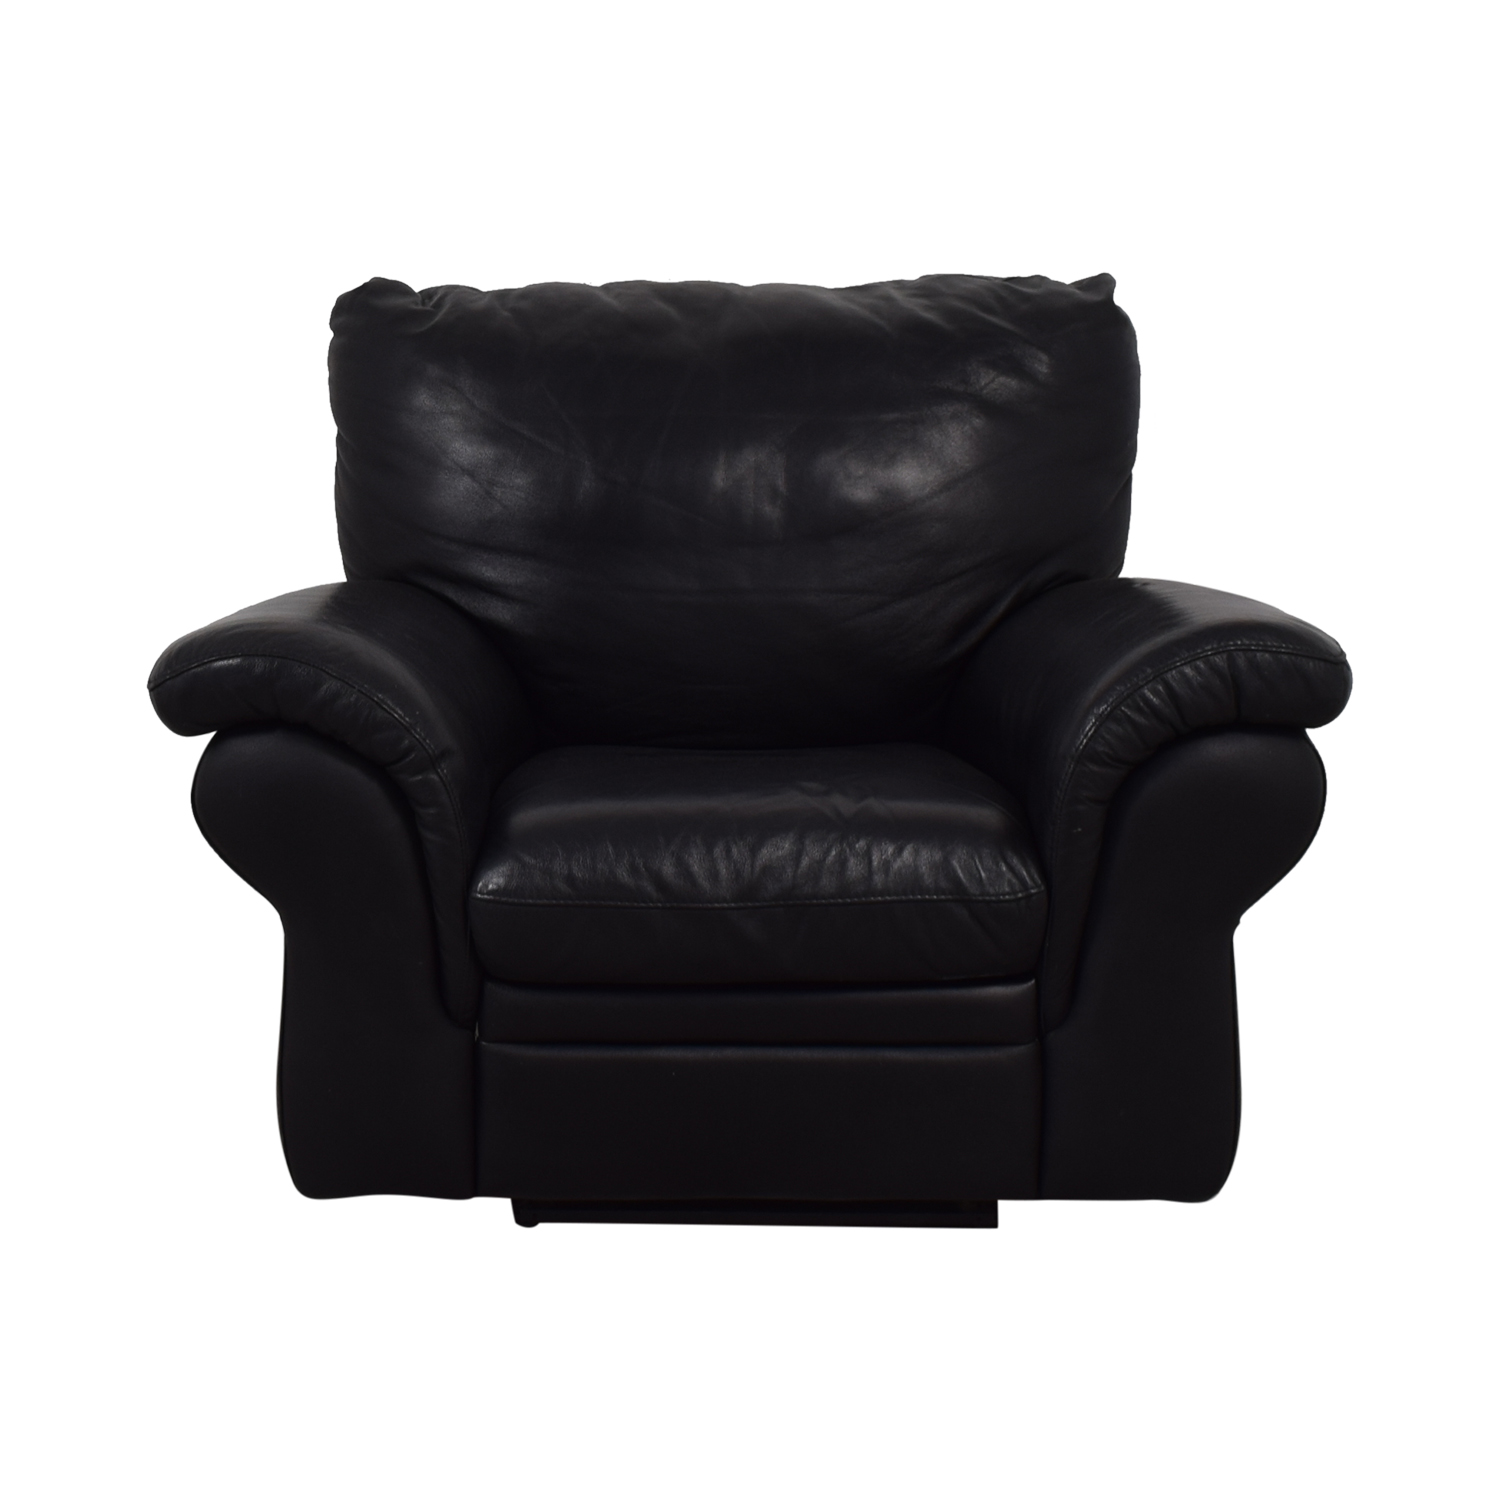 shop Bloomingdale's Black La-Z-Boy Recliner Bloomingdale's